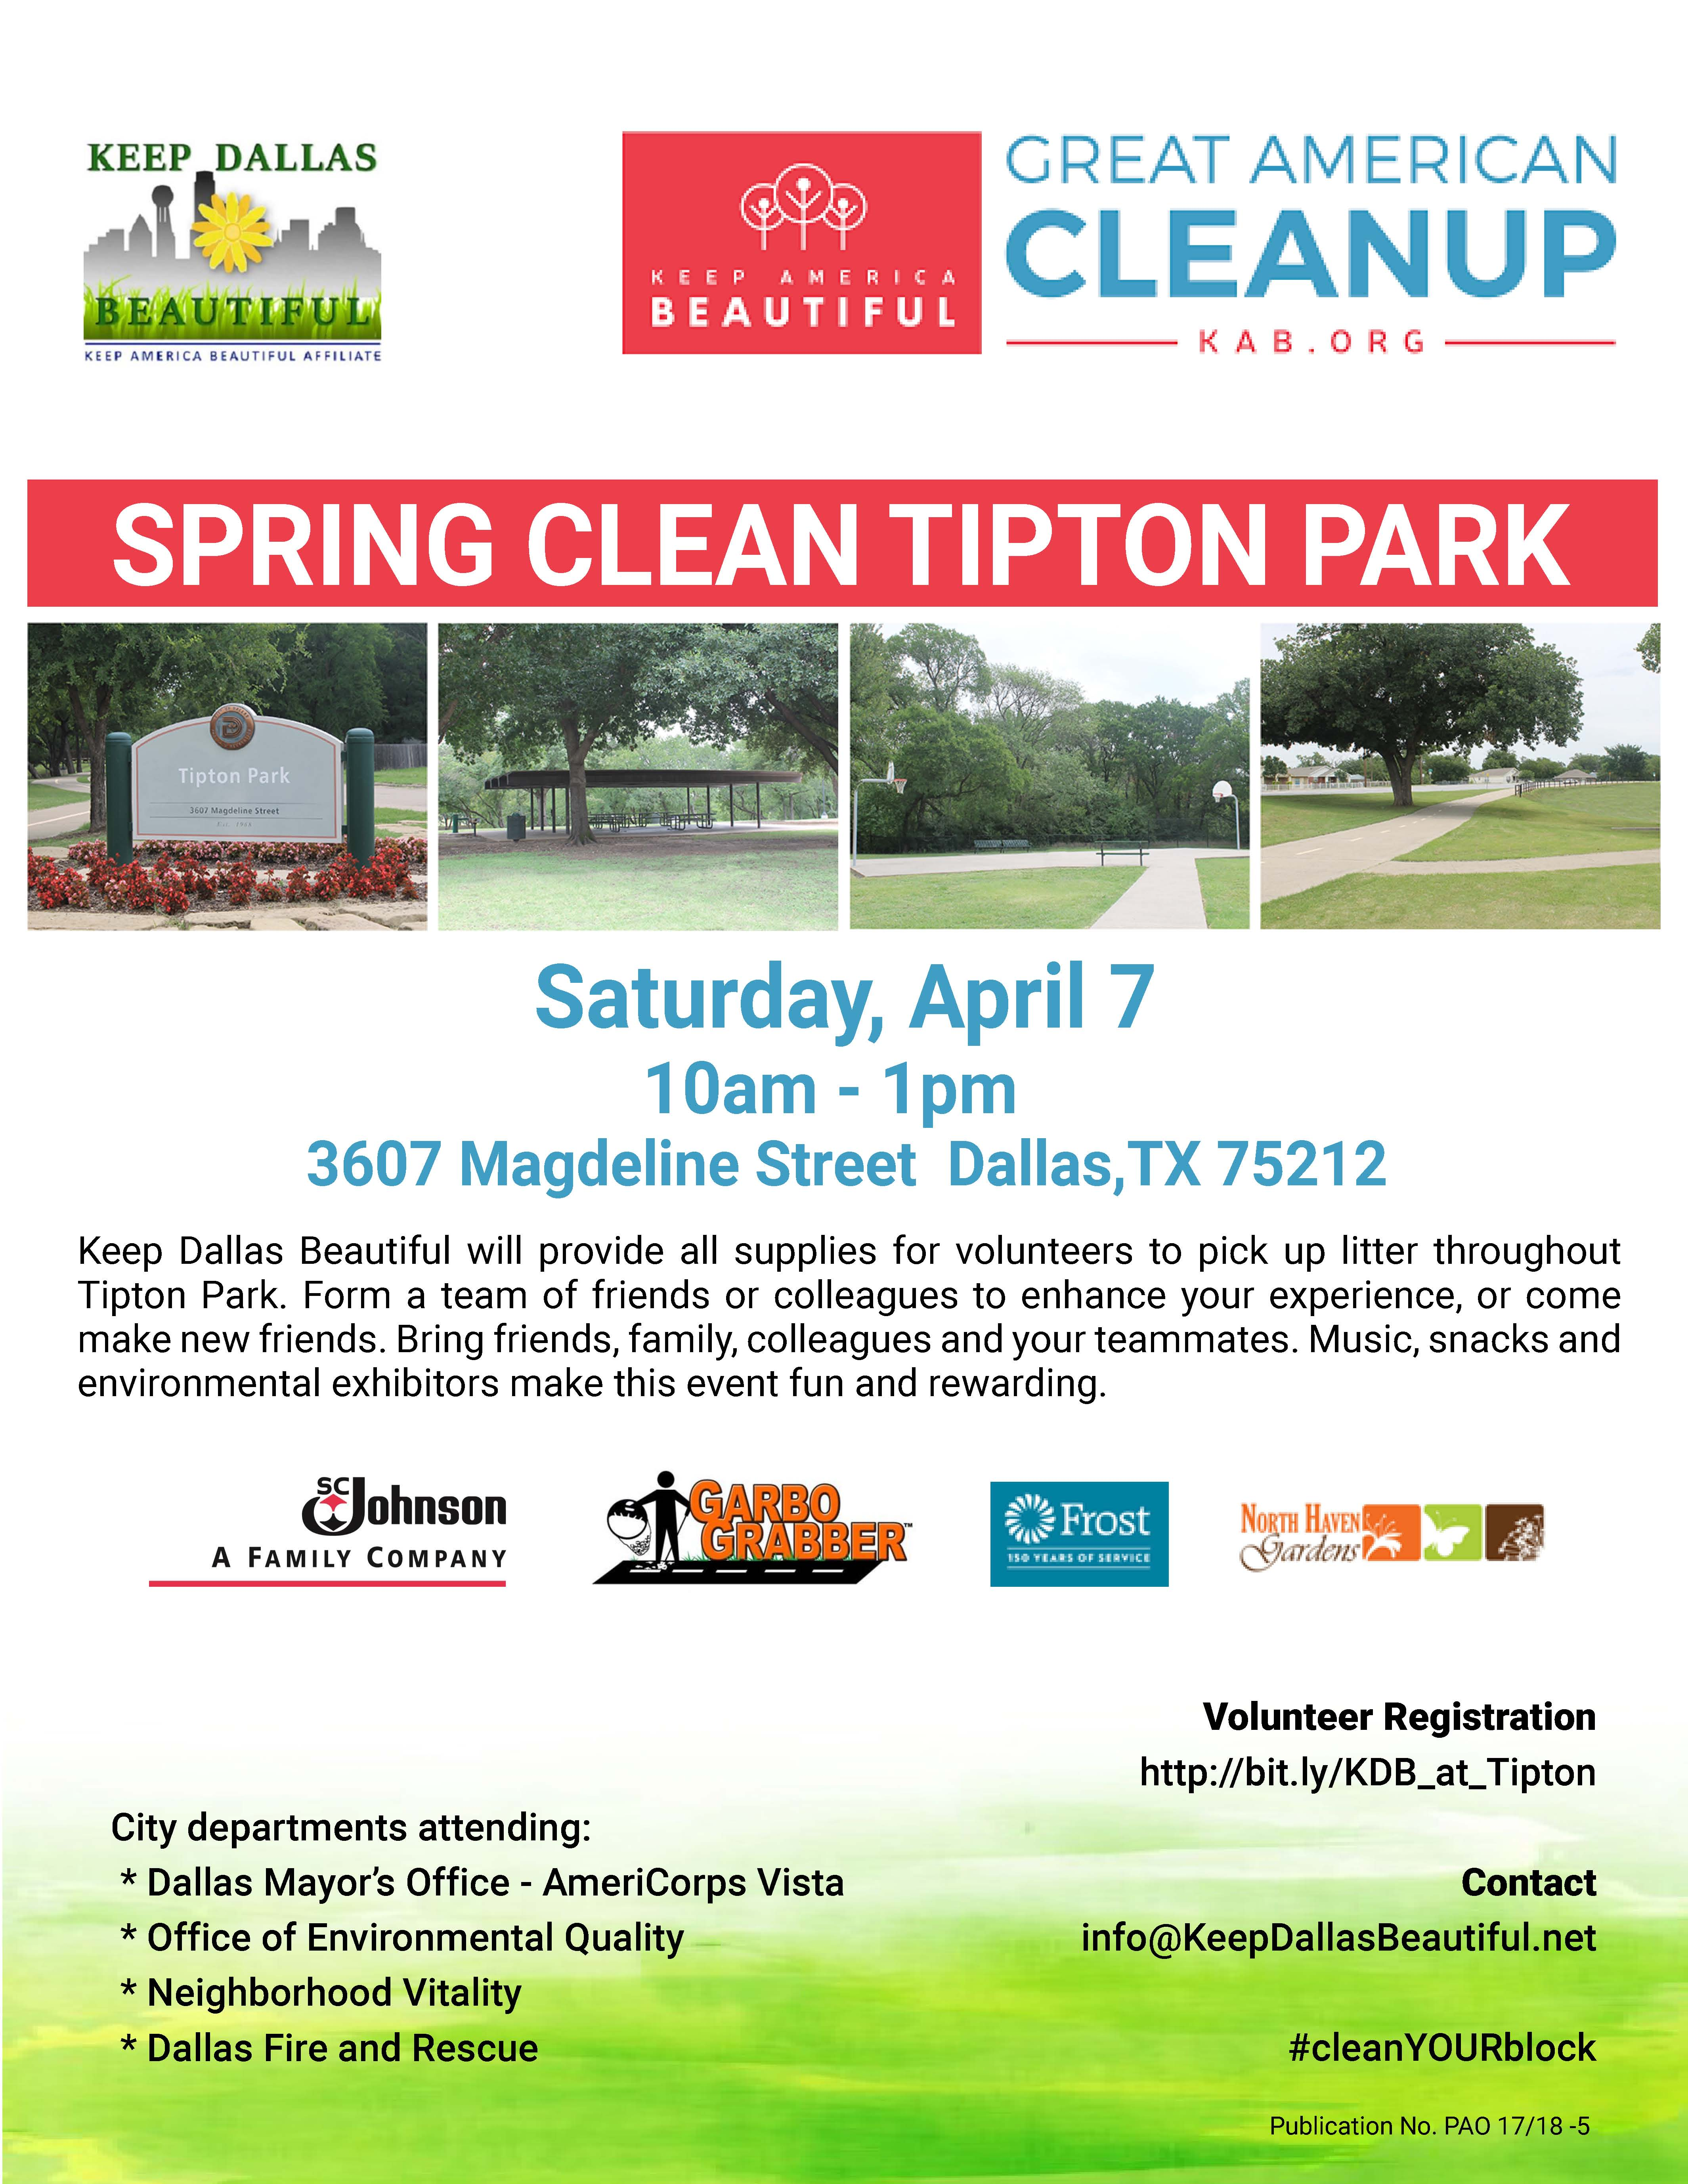 Tipton Park, litter, clean up, Dallas, park